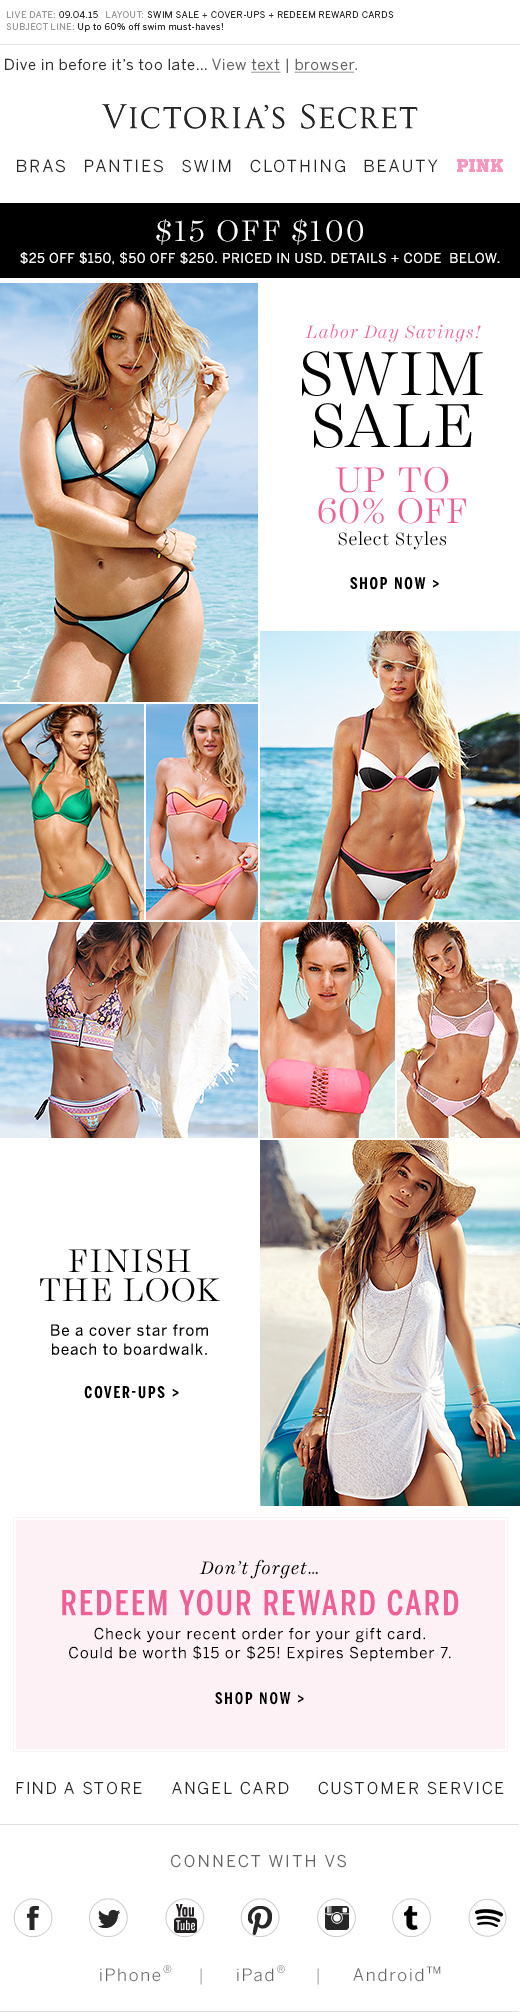 090415-swim-sale-email